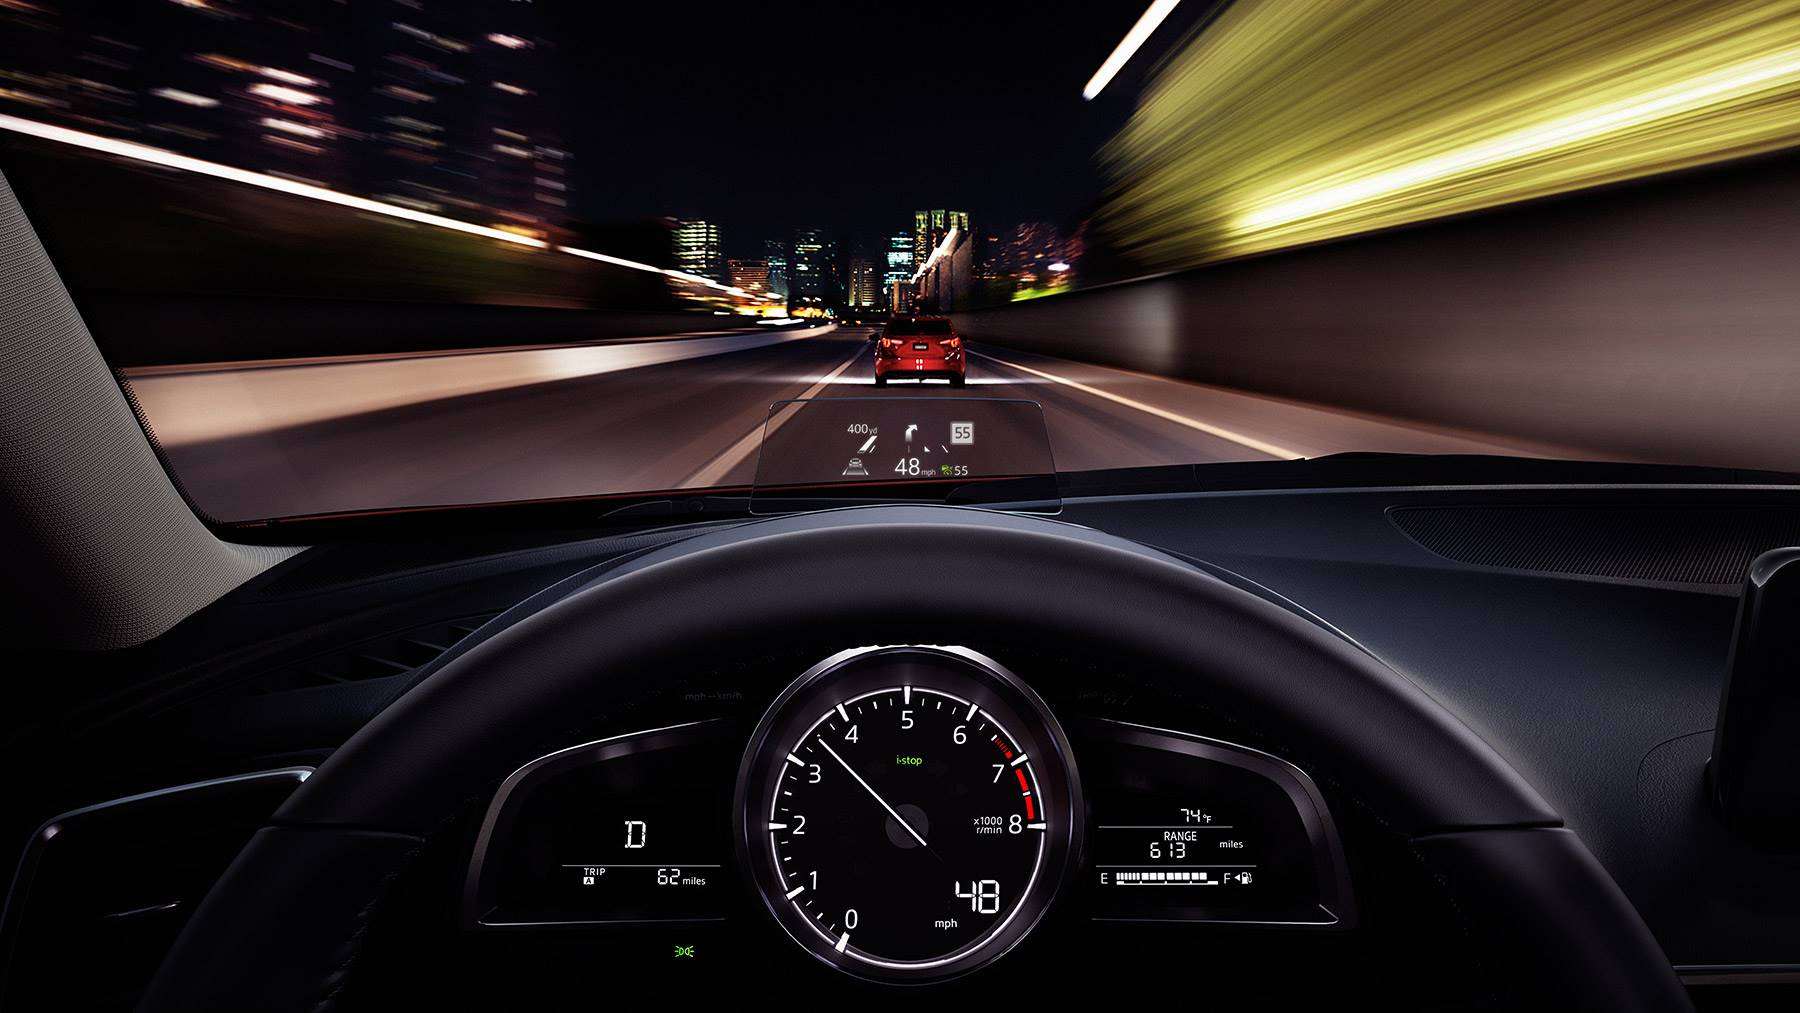 View Important Vehicle Information As You're Cruising in the Mazda3!